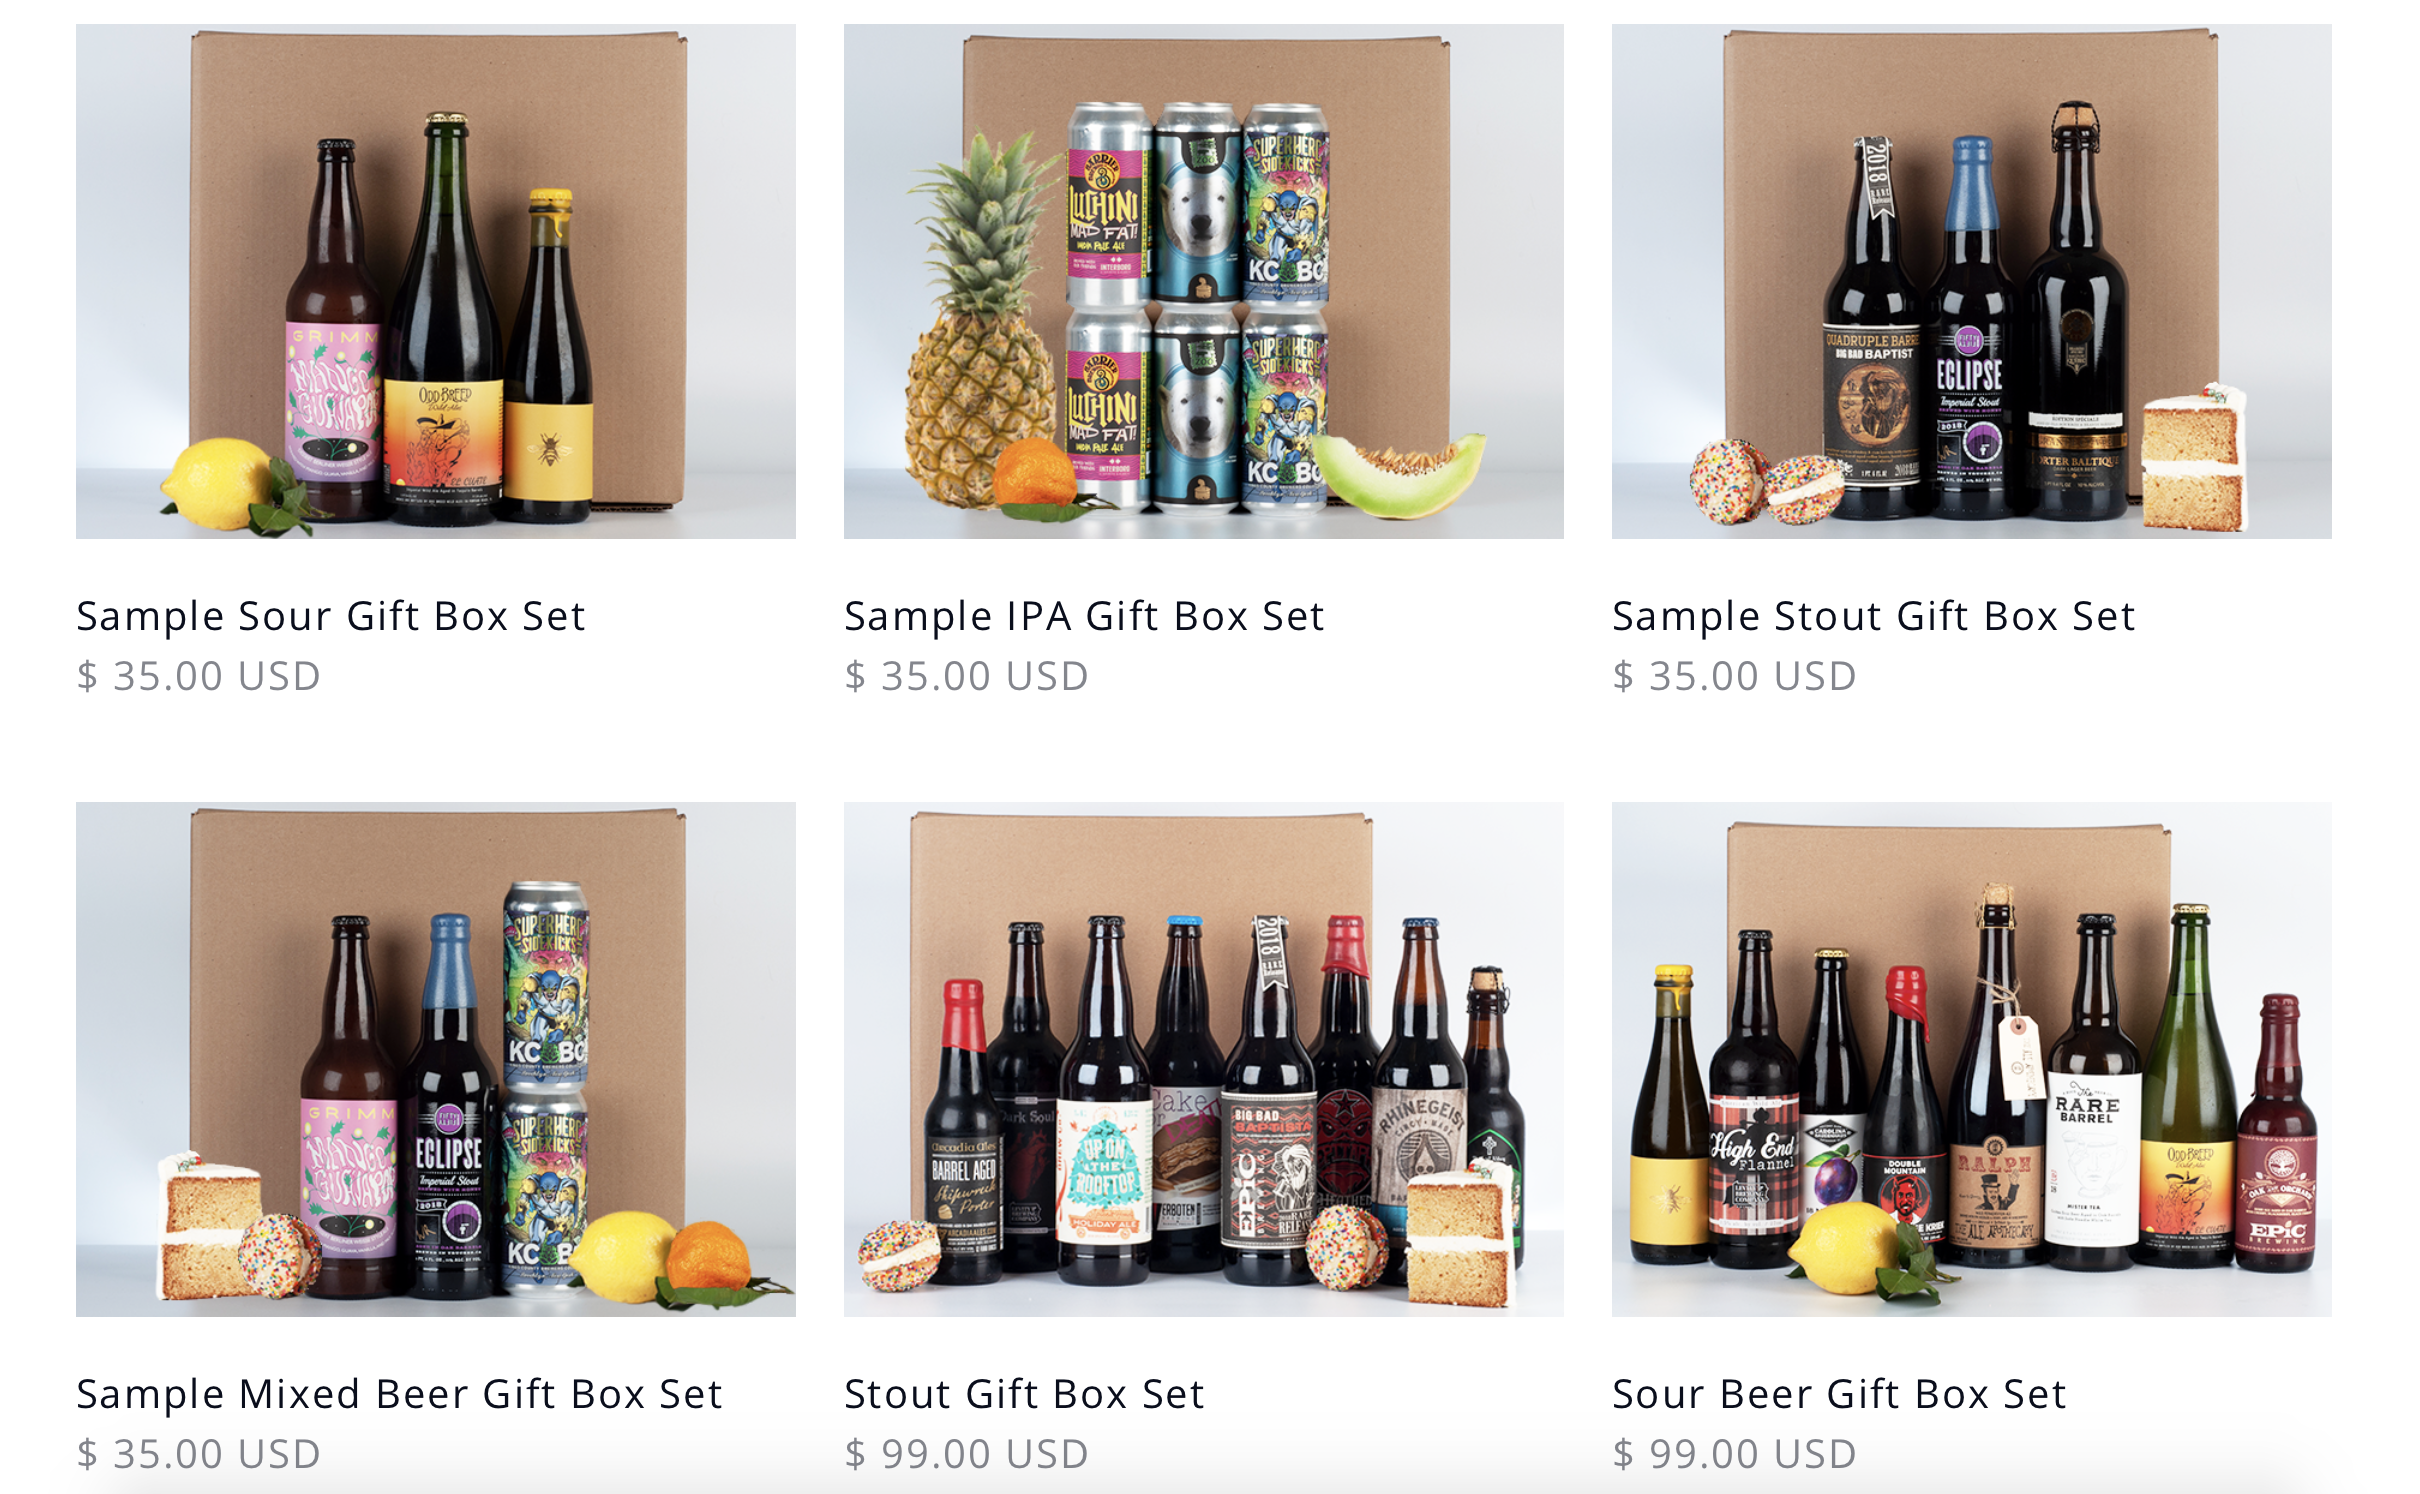 Various Tavour Beer Gift Boxes